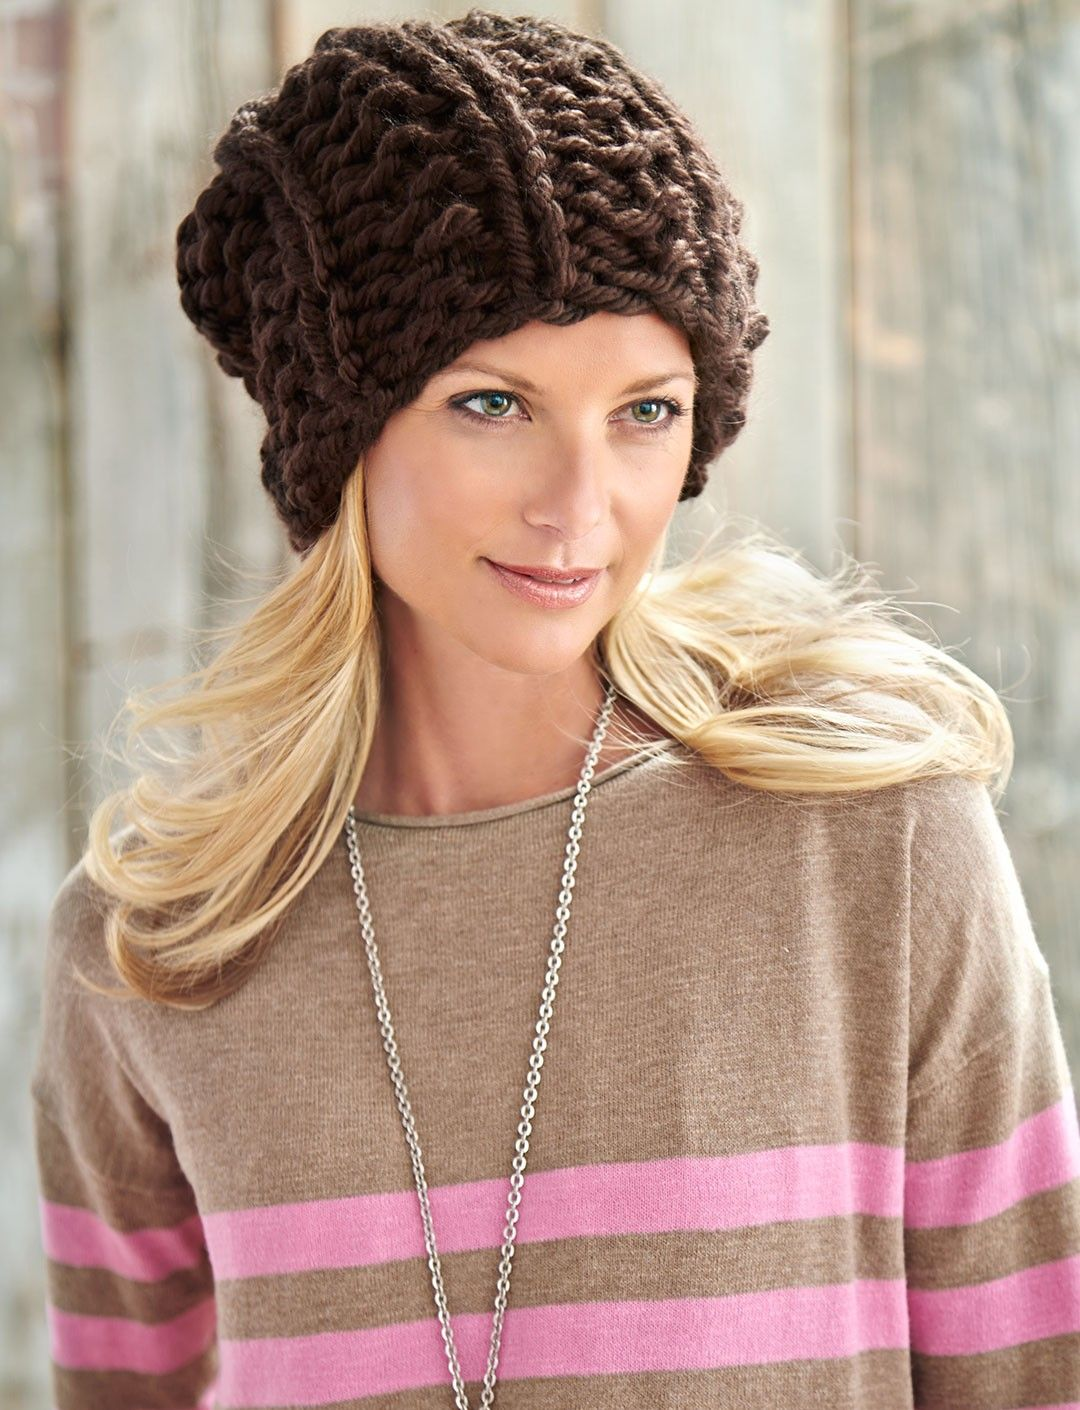 Yarnspirations bernat big textures hat free pattern knit bernat big textures hat free easy pattern to knit for beginners skill level beginner super cozy and big on texture this knit hat is a great project for bankloansurffo Images